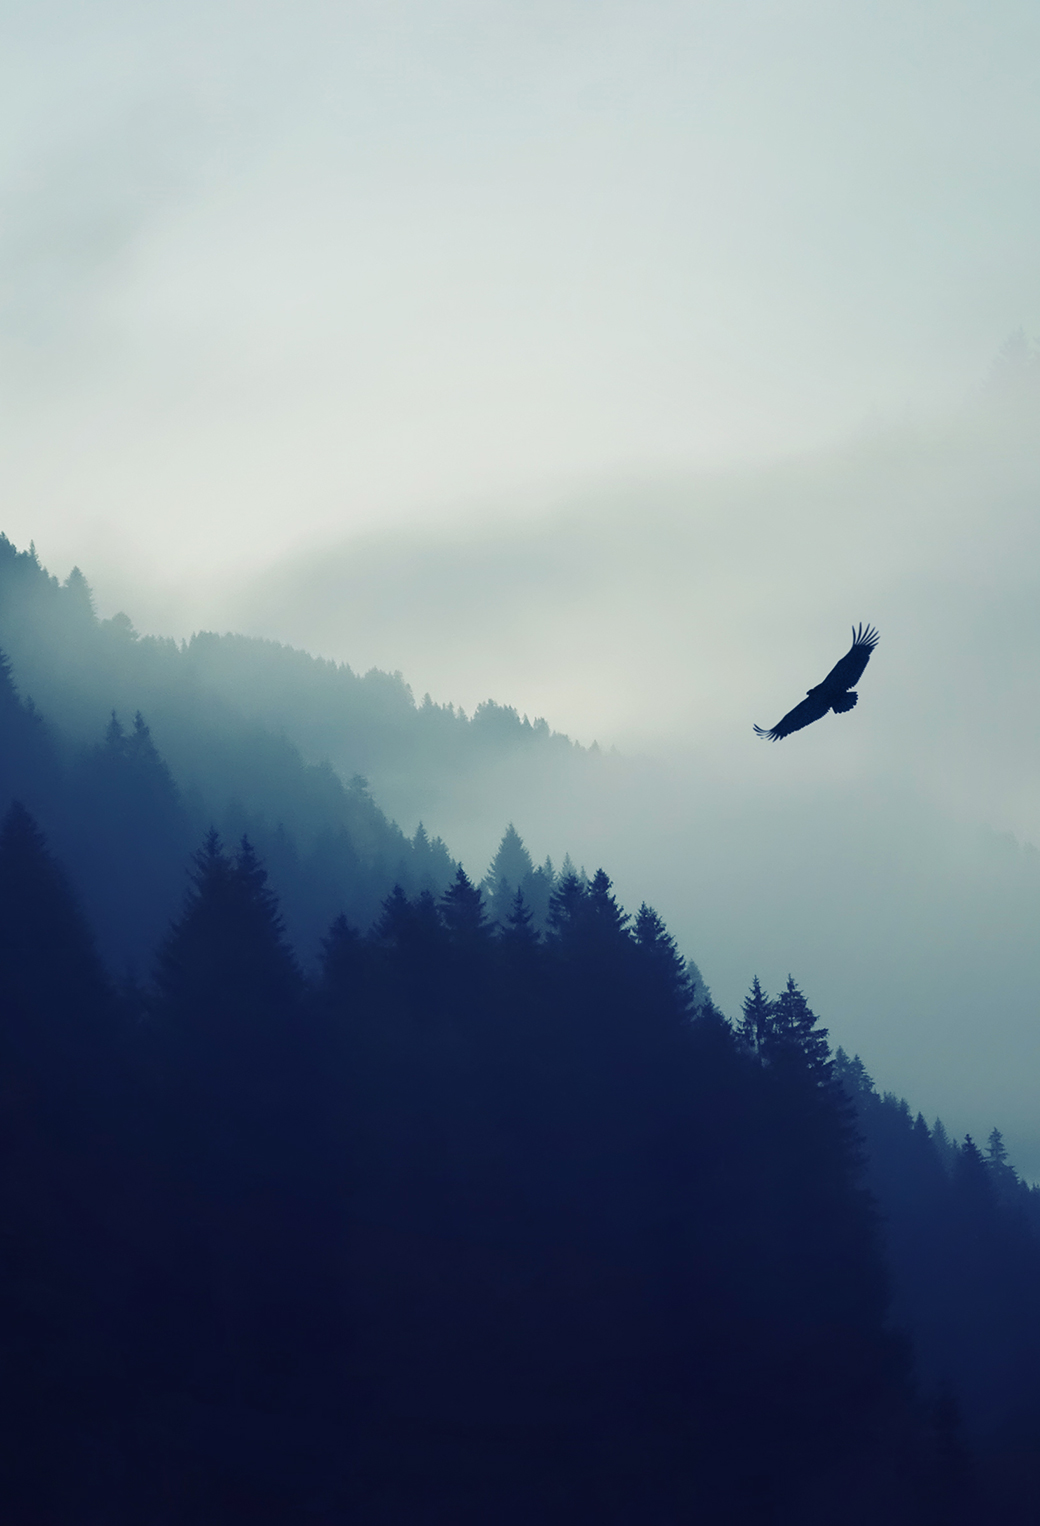 Animals Birds Eagle in the Fog 3Wallpapers iphone Parallax Animals Birds Eagle in the Fog